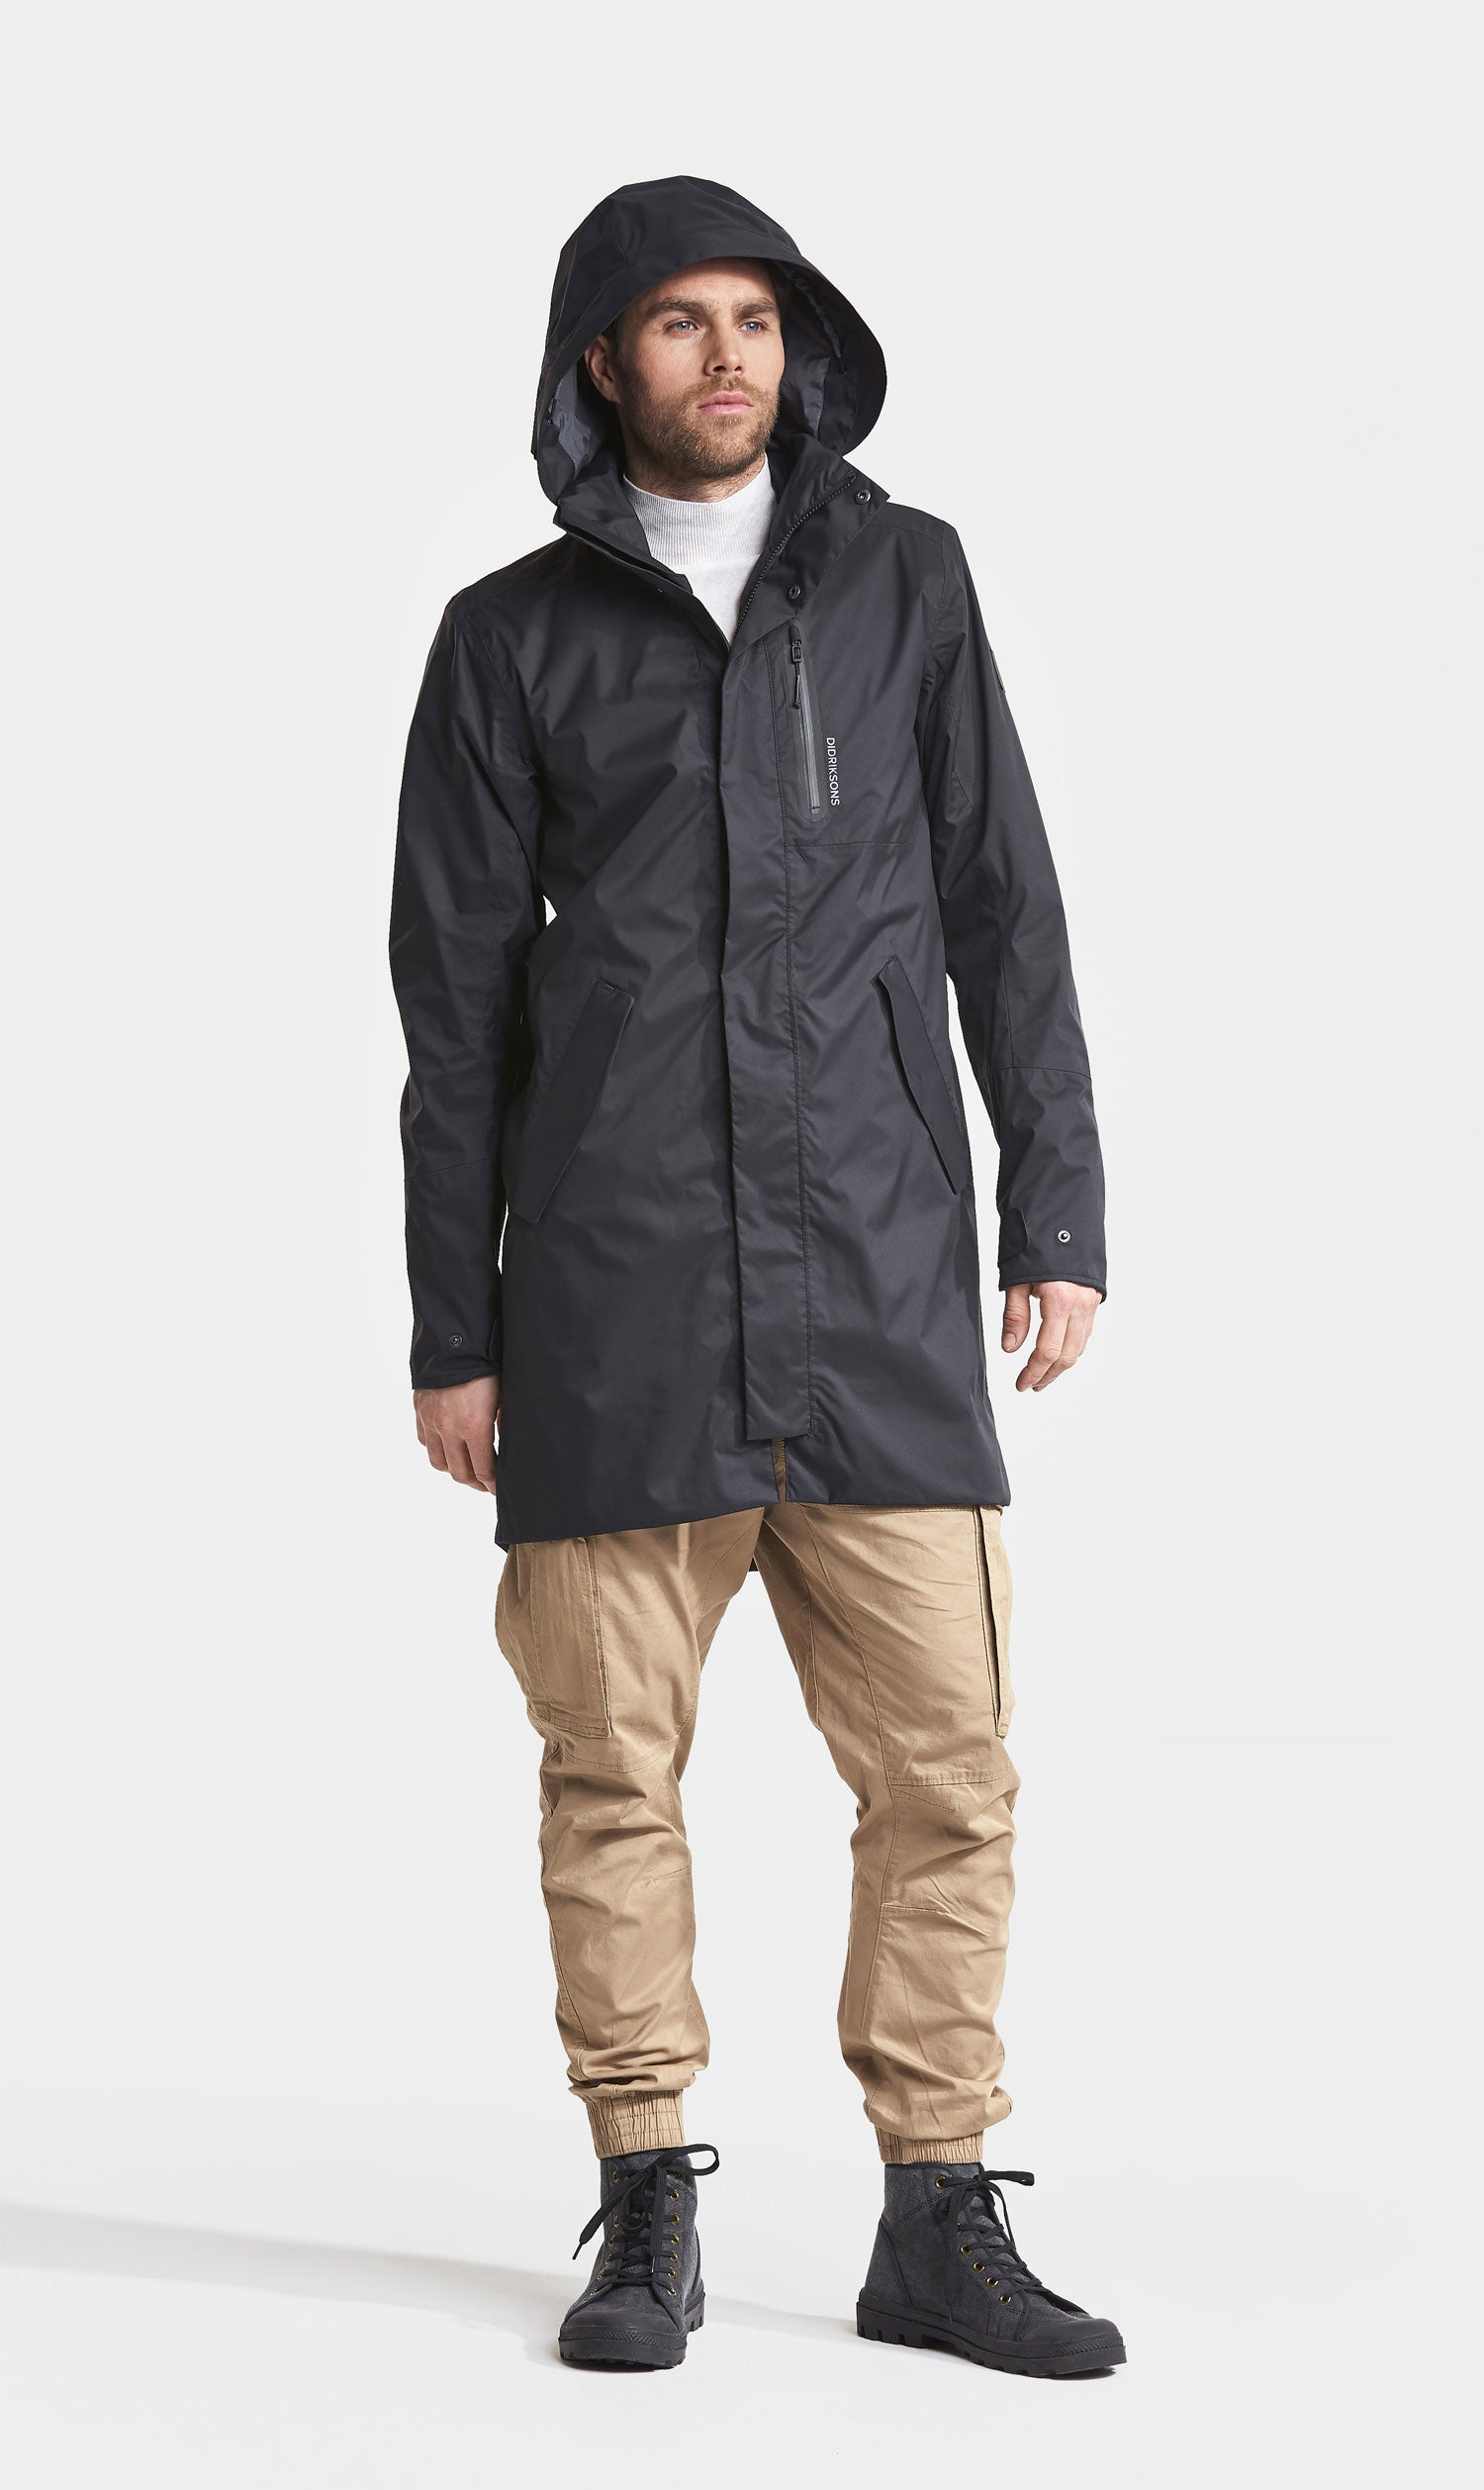 With hood up Didriksons Arnold Waterproof Parka